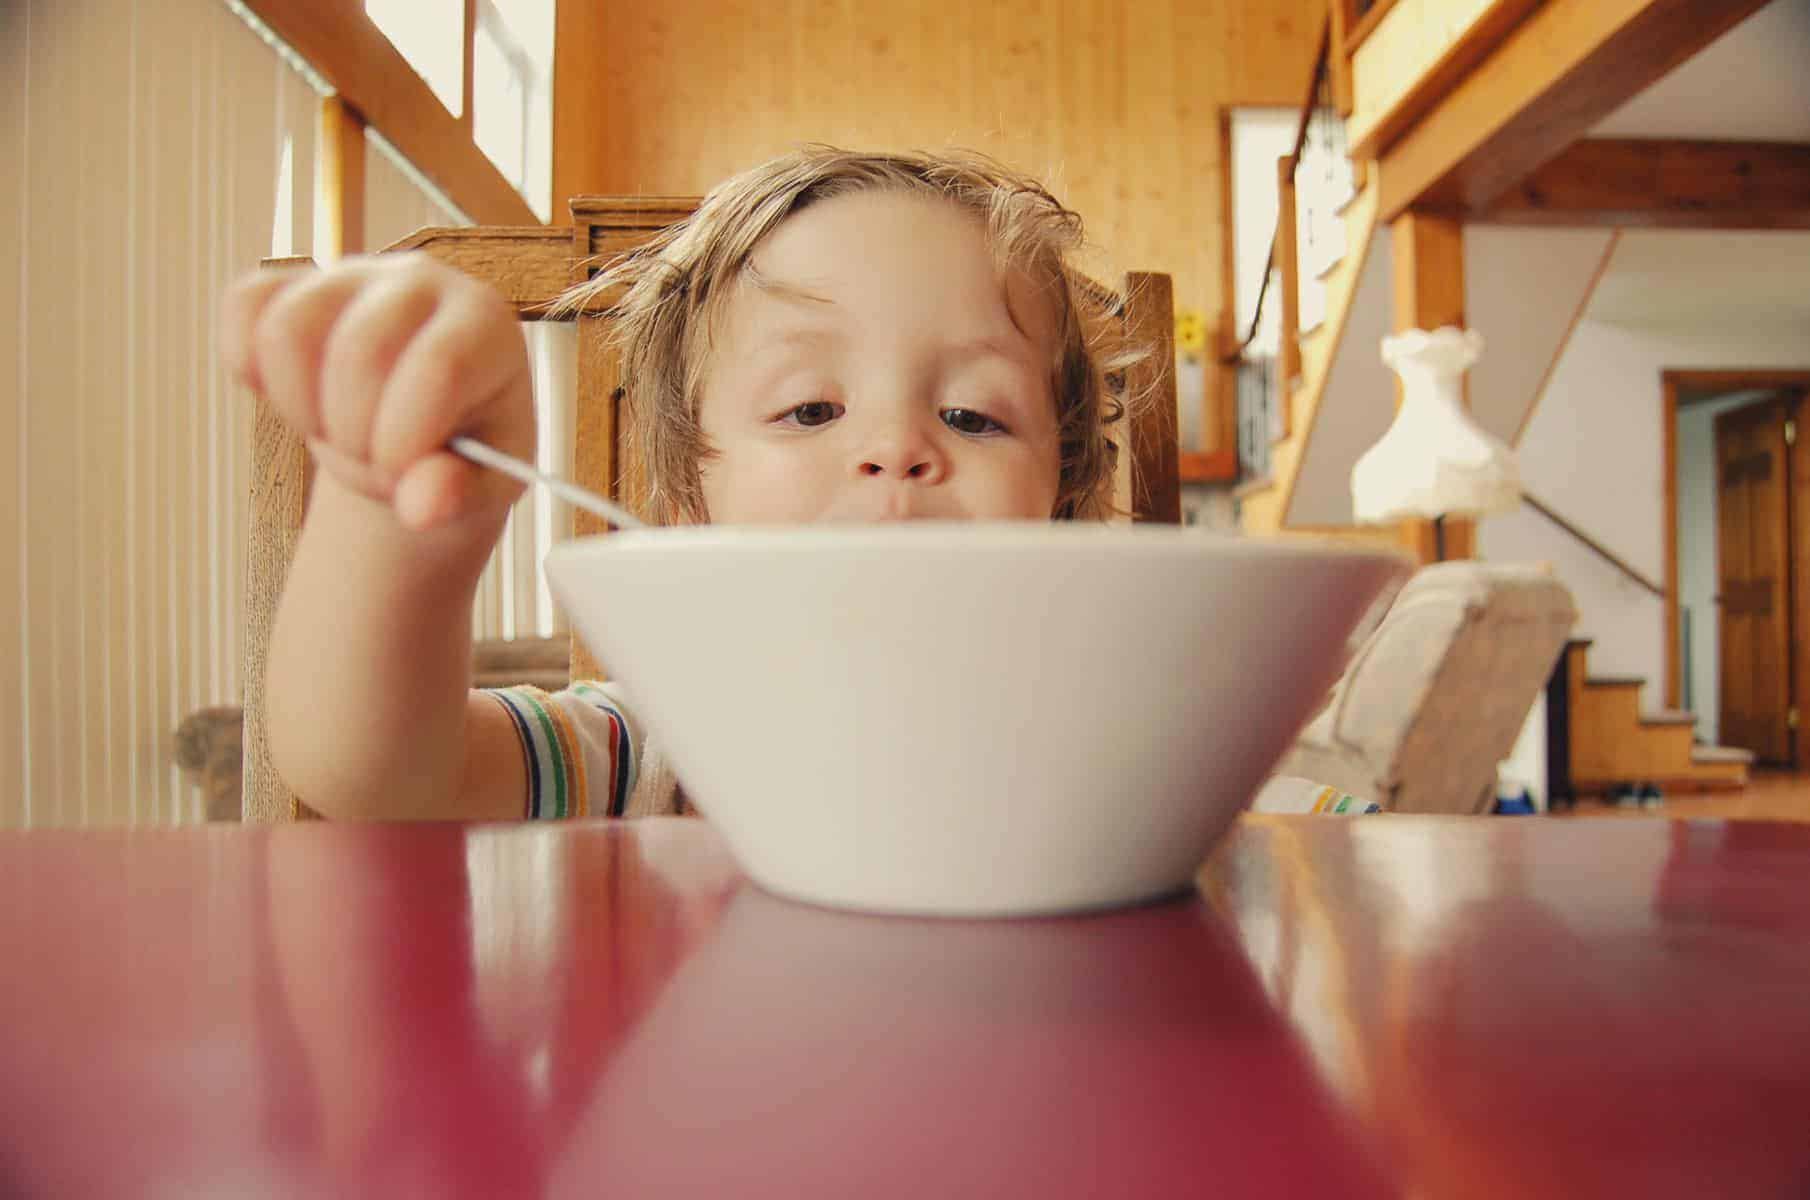 Glyphosate in food kid eating breakfast